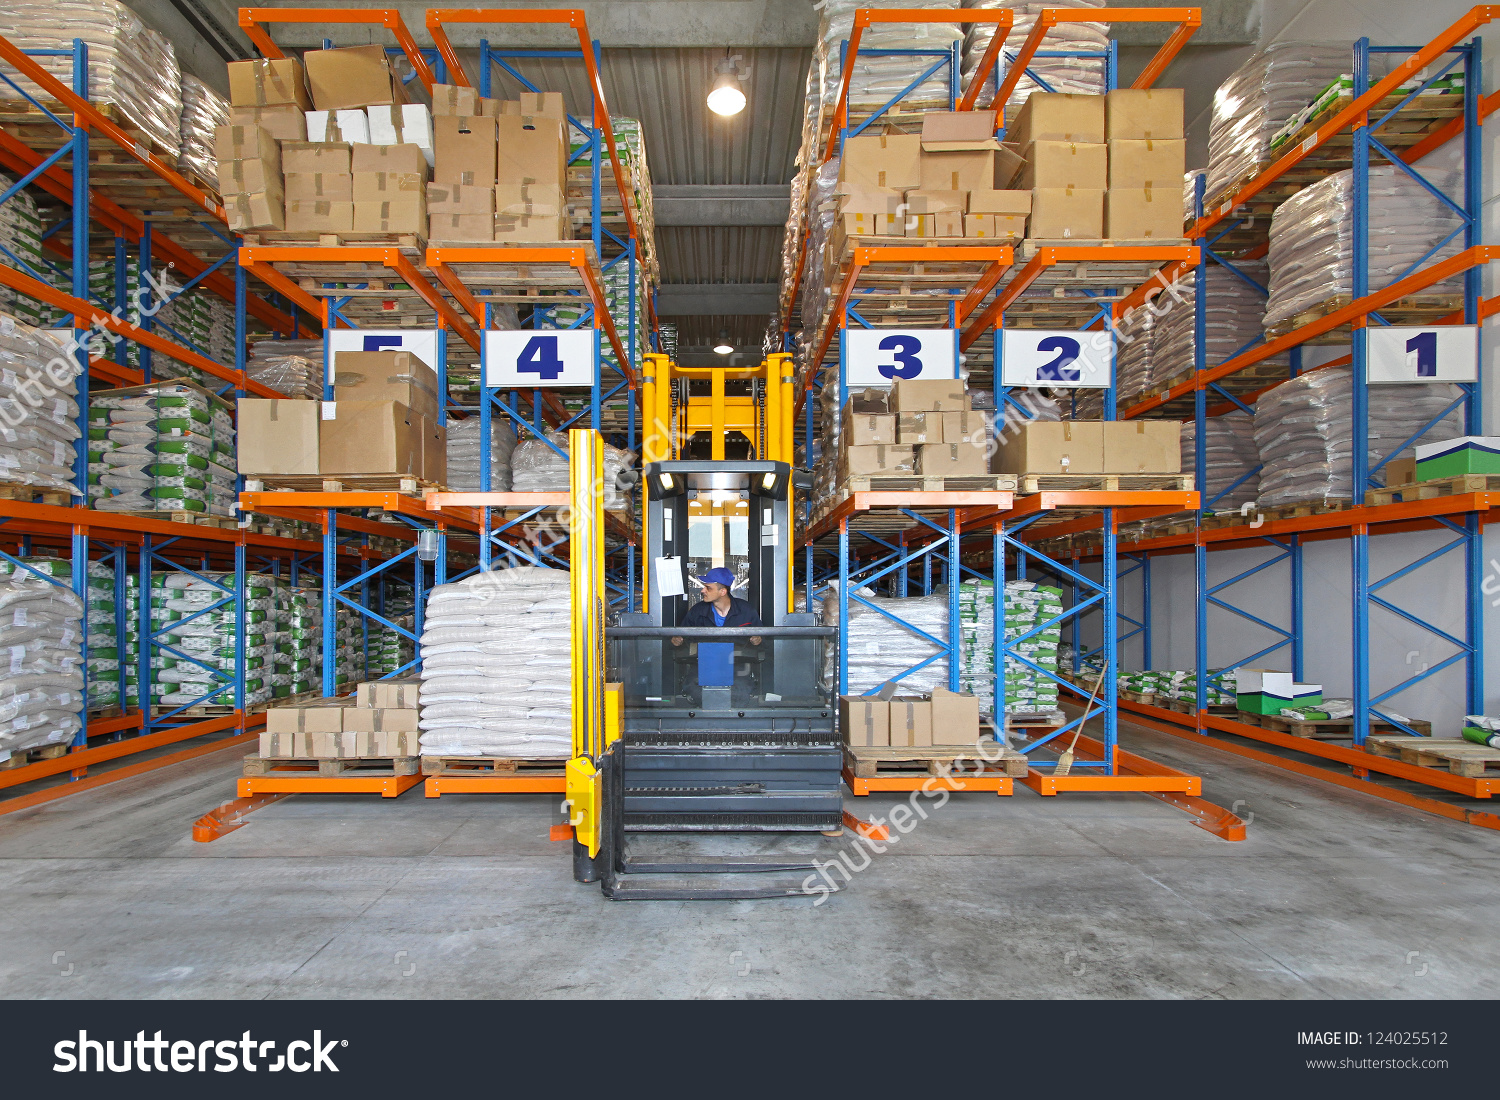 Distribution Warehouse With High Rack Stacker Forklift Stock Photo.